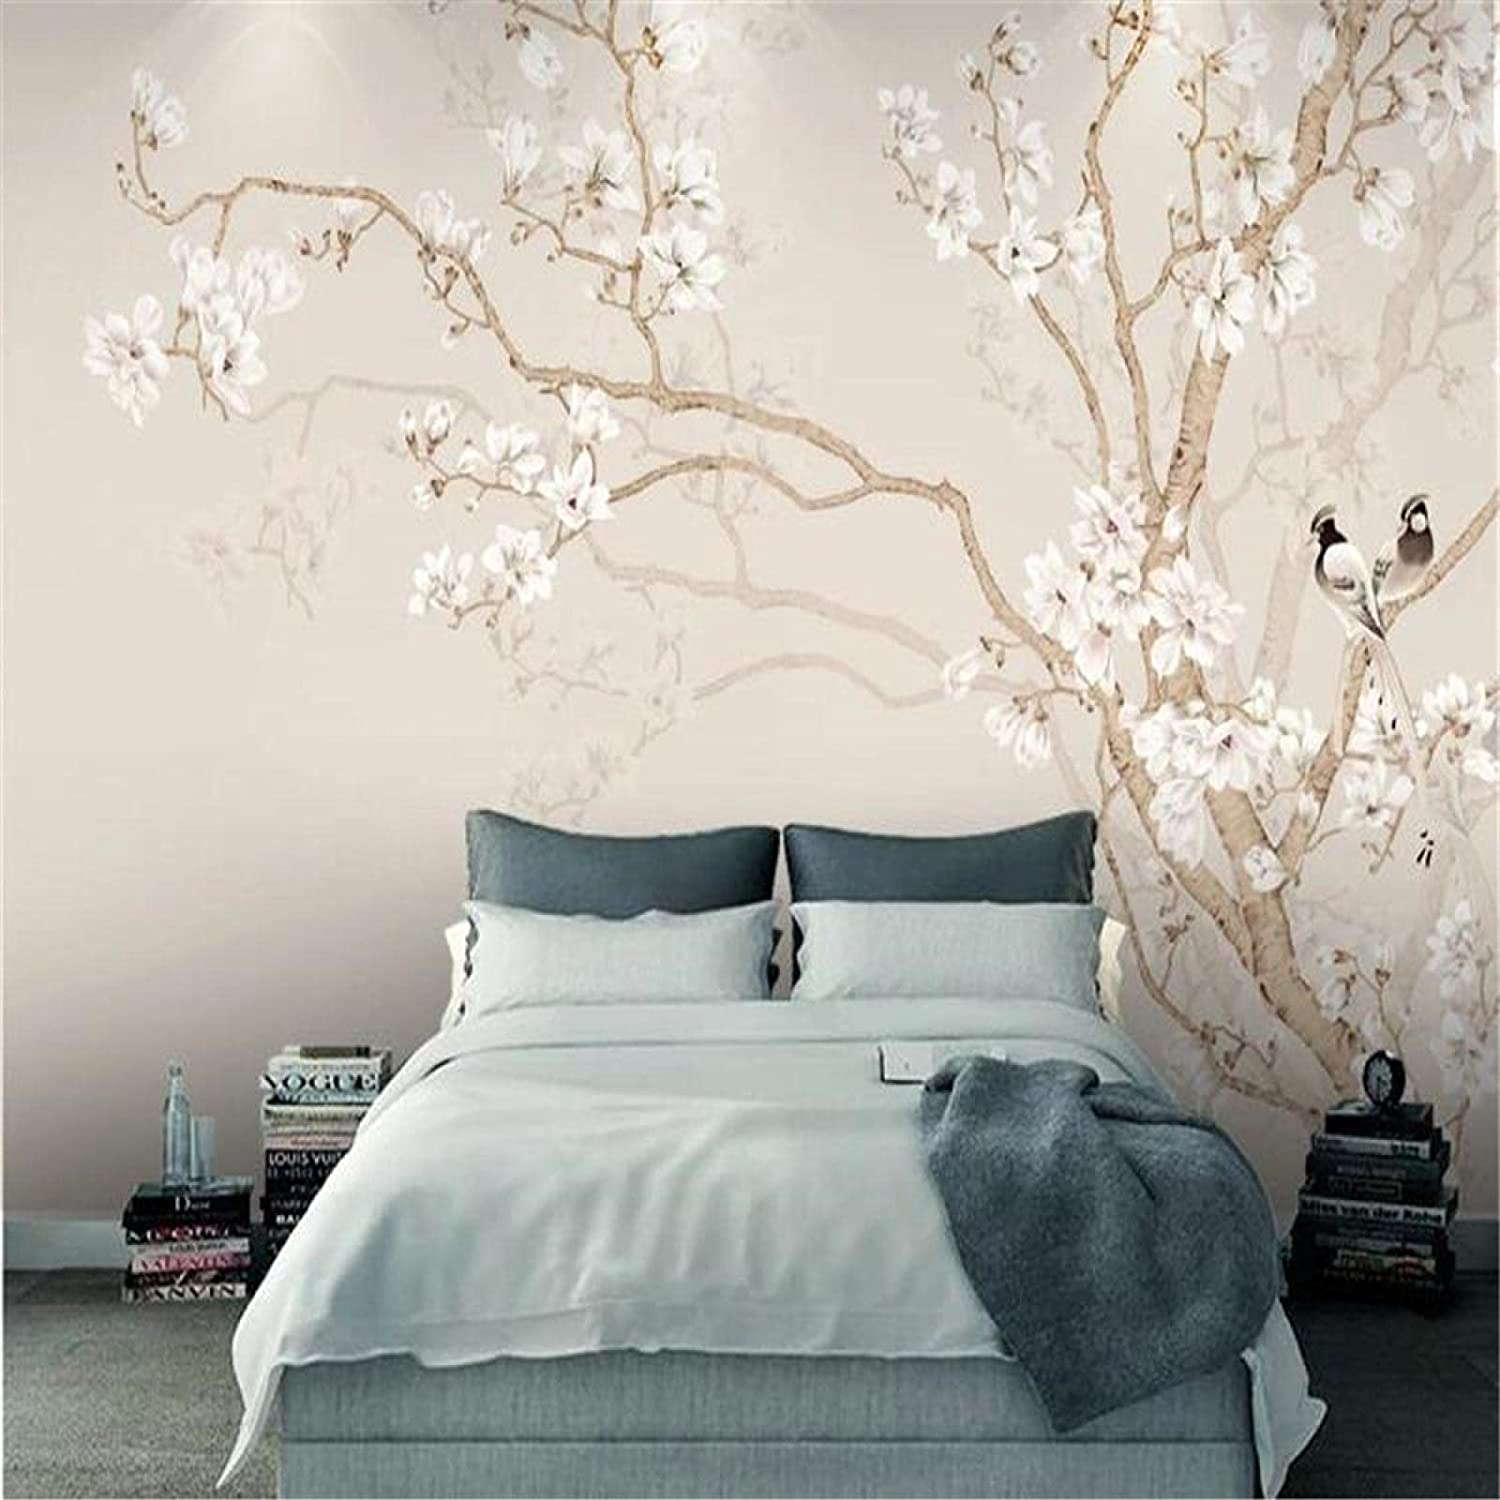 HGFHGD Magnolia Hand-Painted Flowers Minneapolis Mall and Room Mu Living 3D Birds Seattle Mall